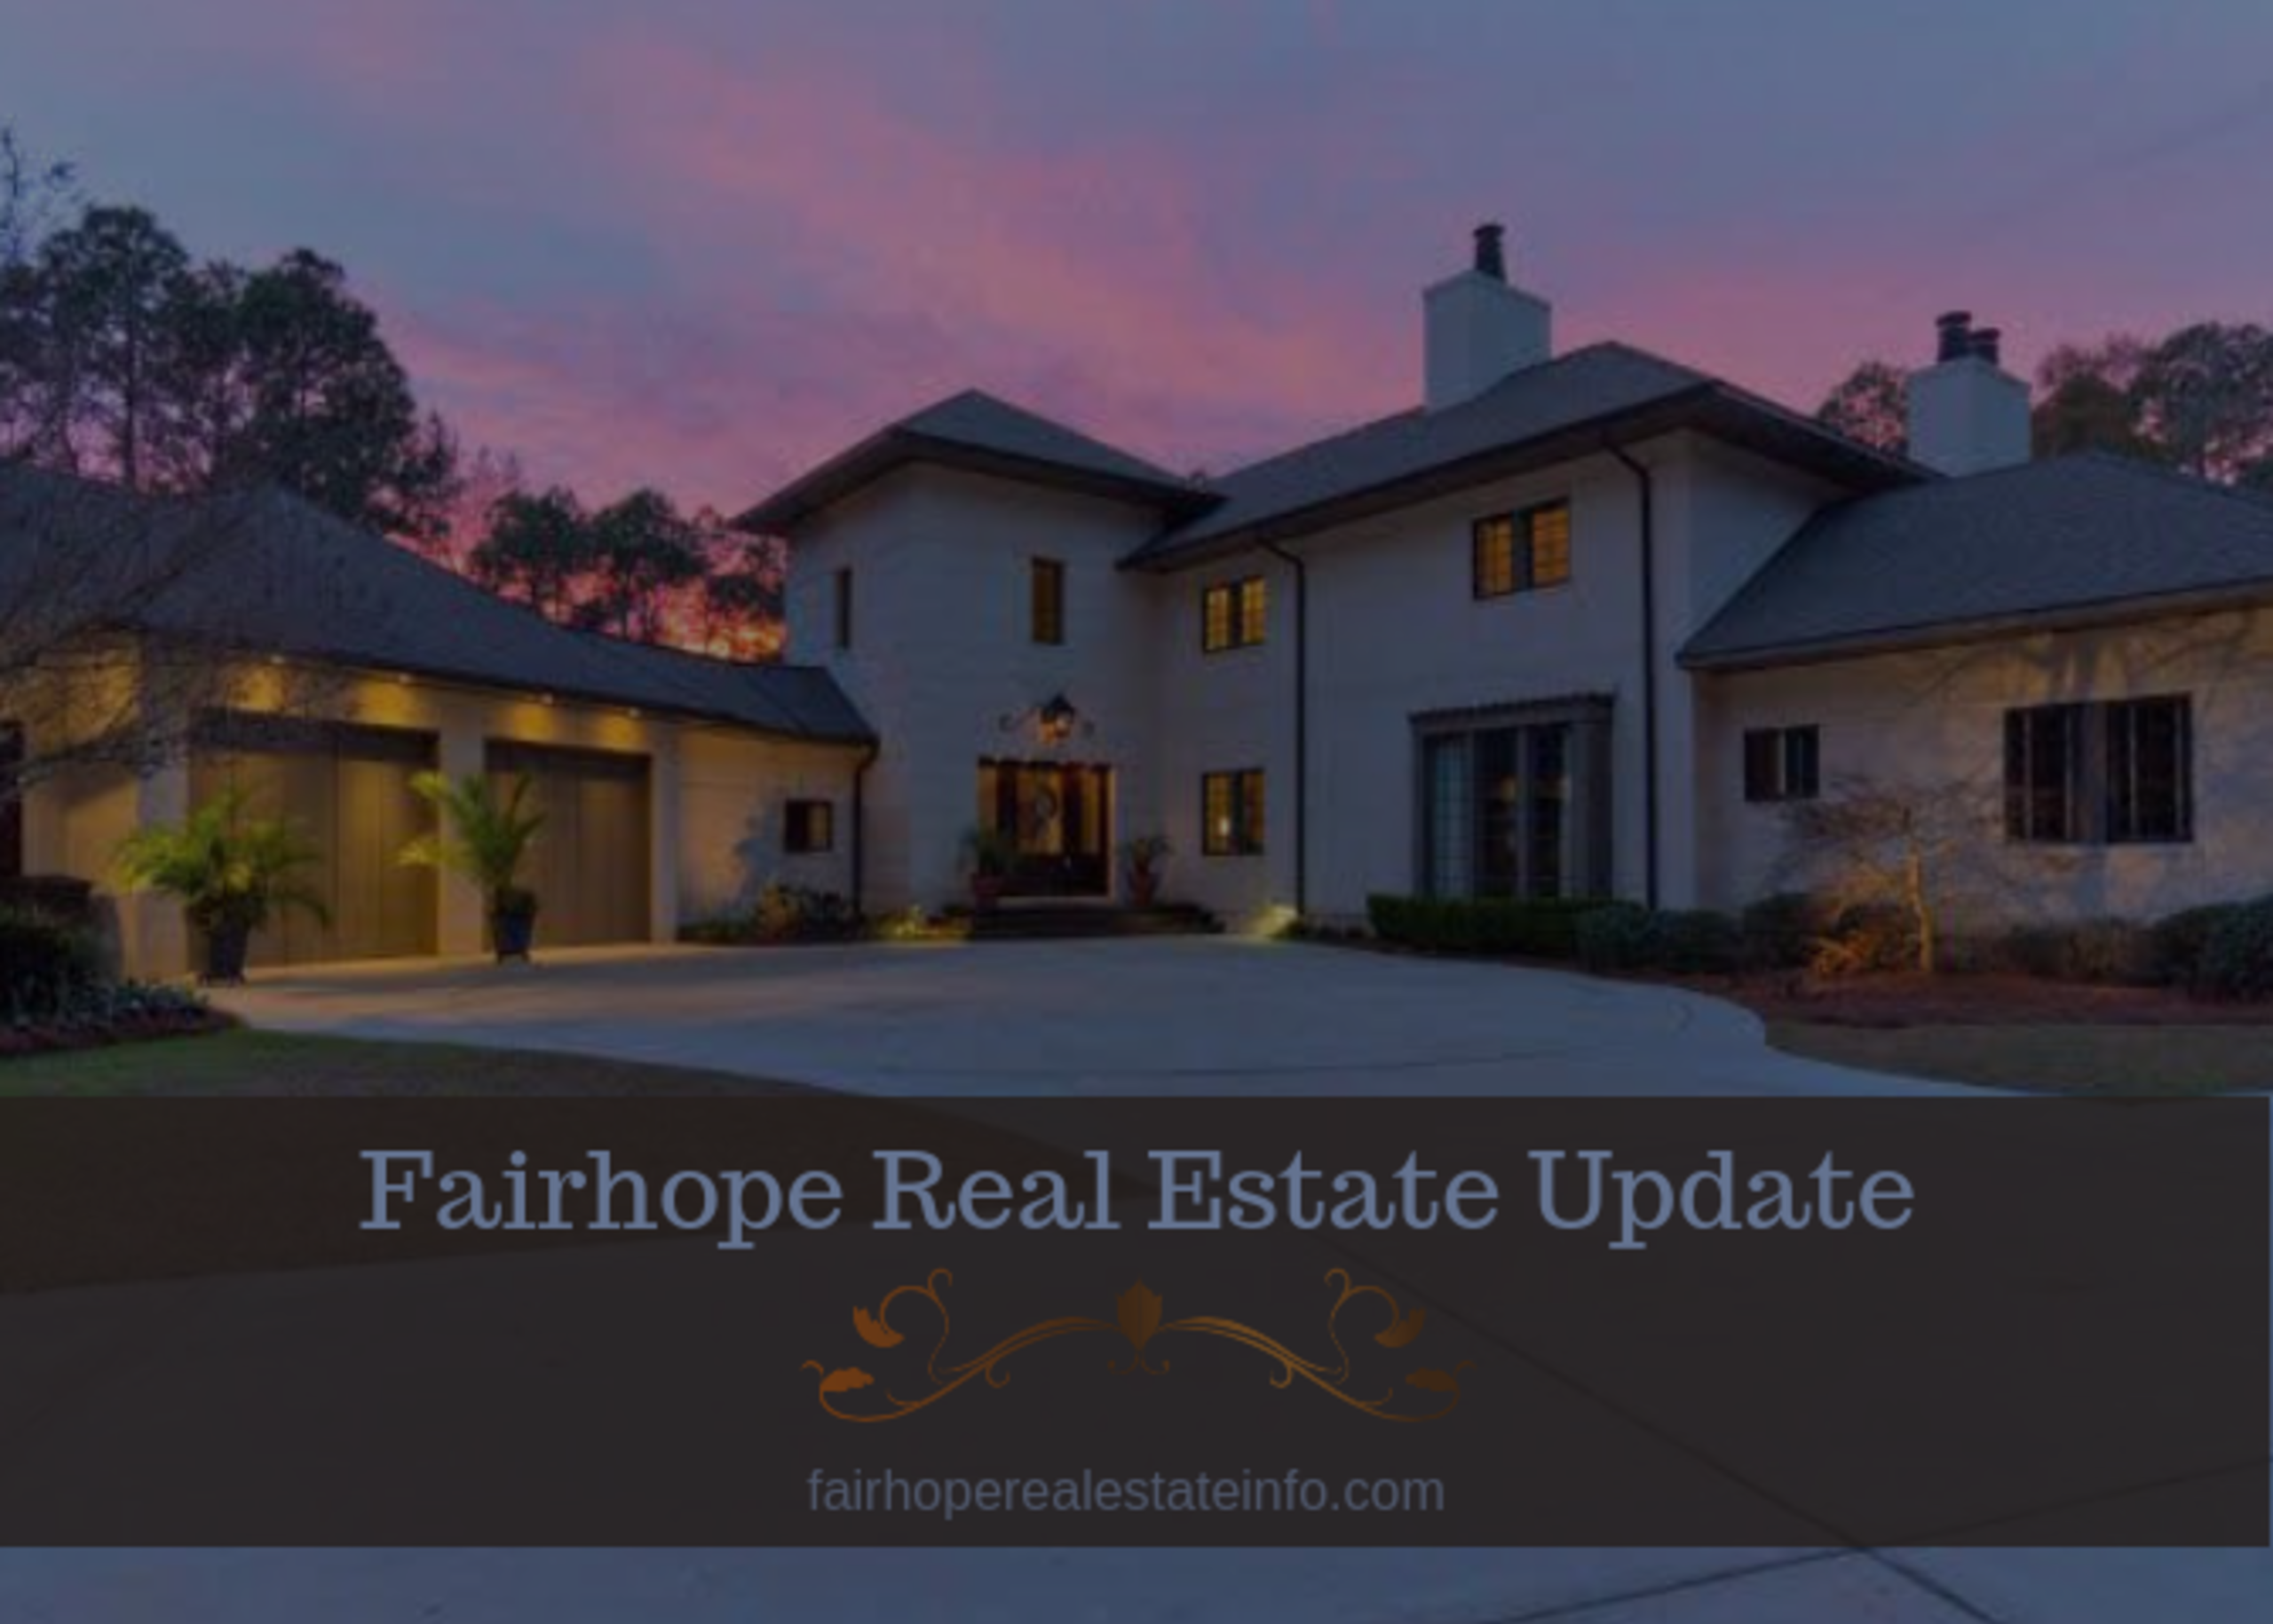 Fairhope Real Estate Update – April 2019